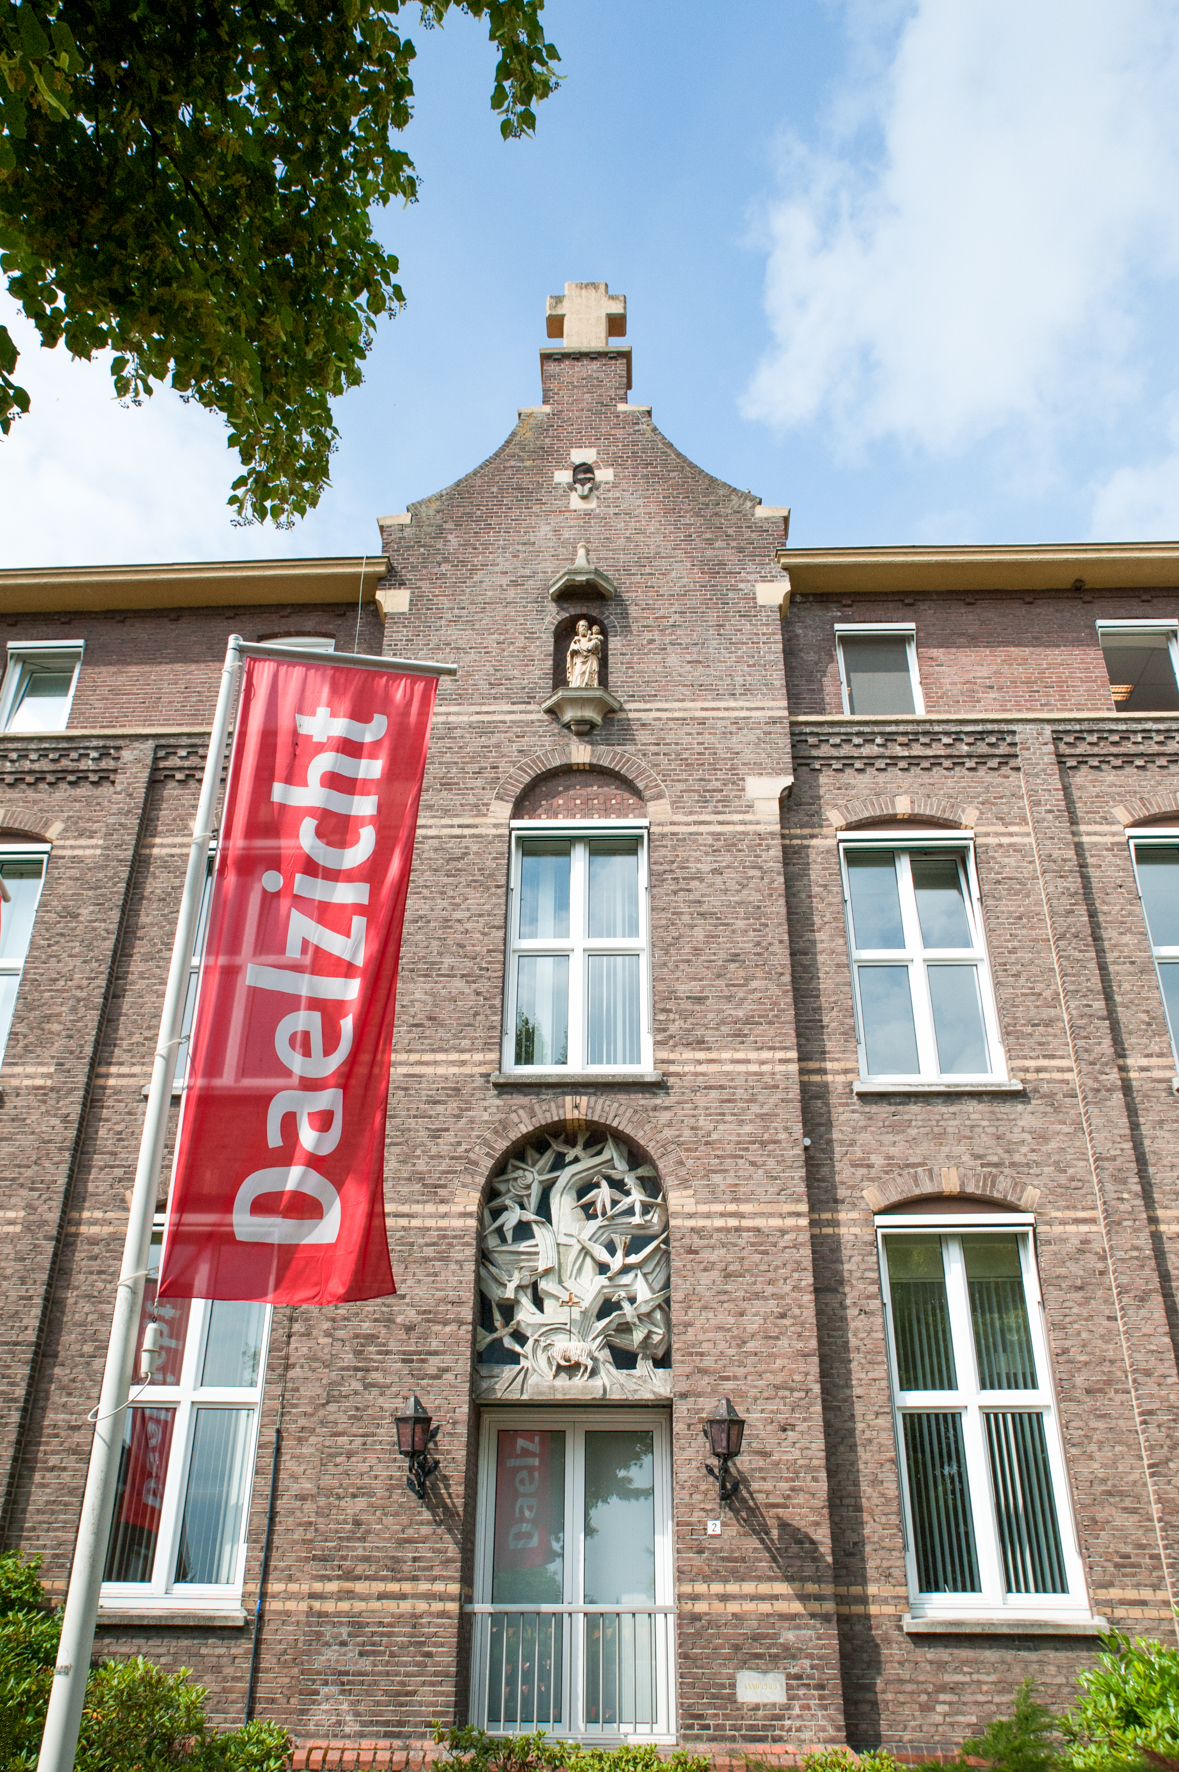 Rector_Driessenstraat-18.jpg